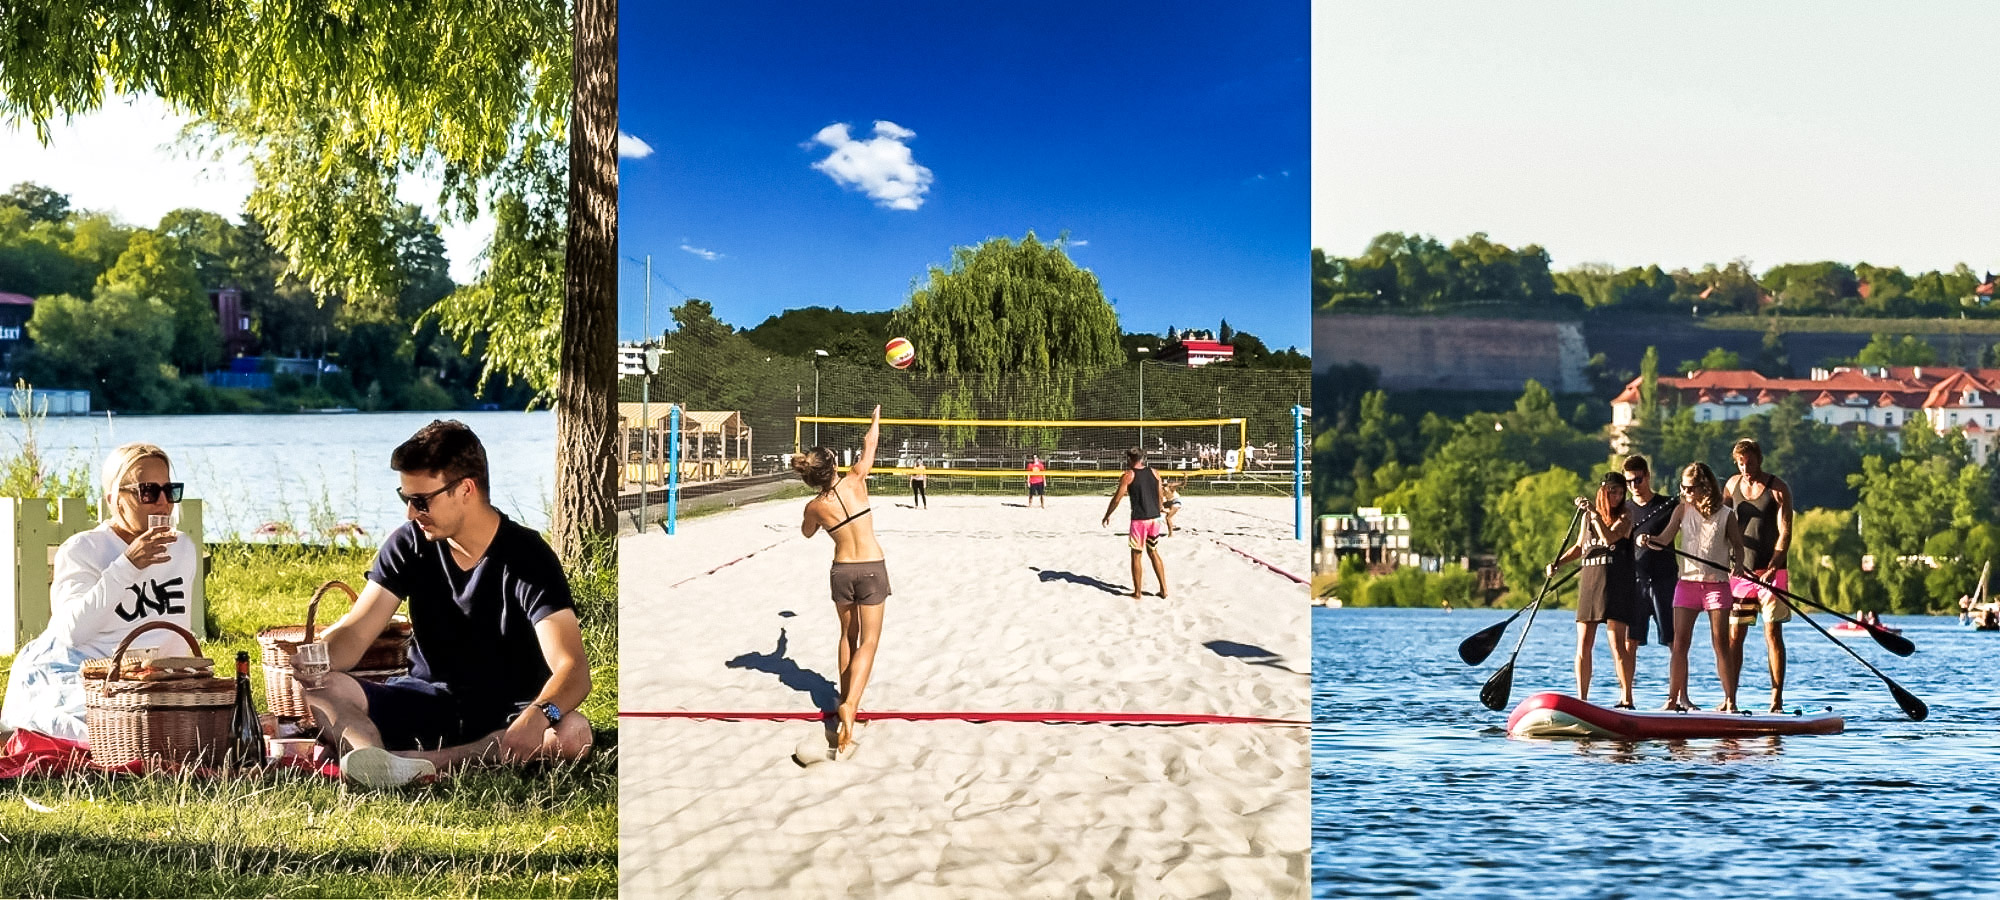 People having a picnic by the river, playing volleyball and standing on a row boat